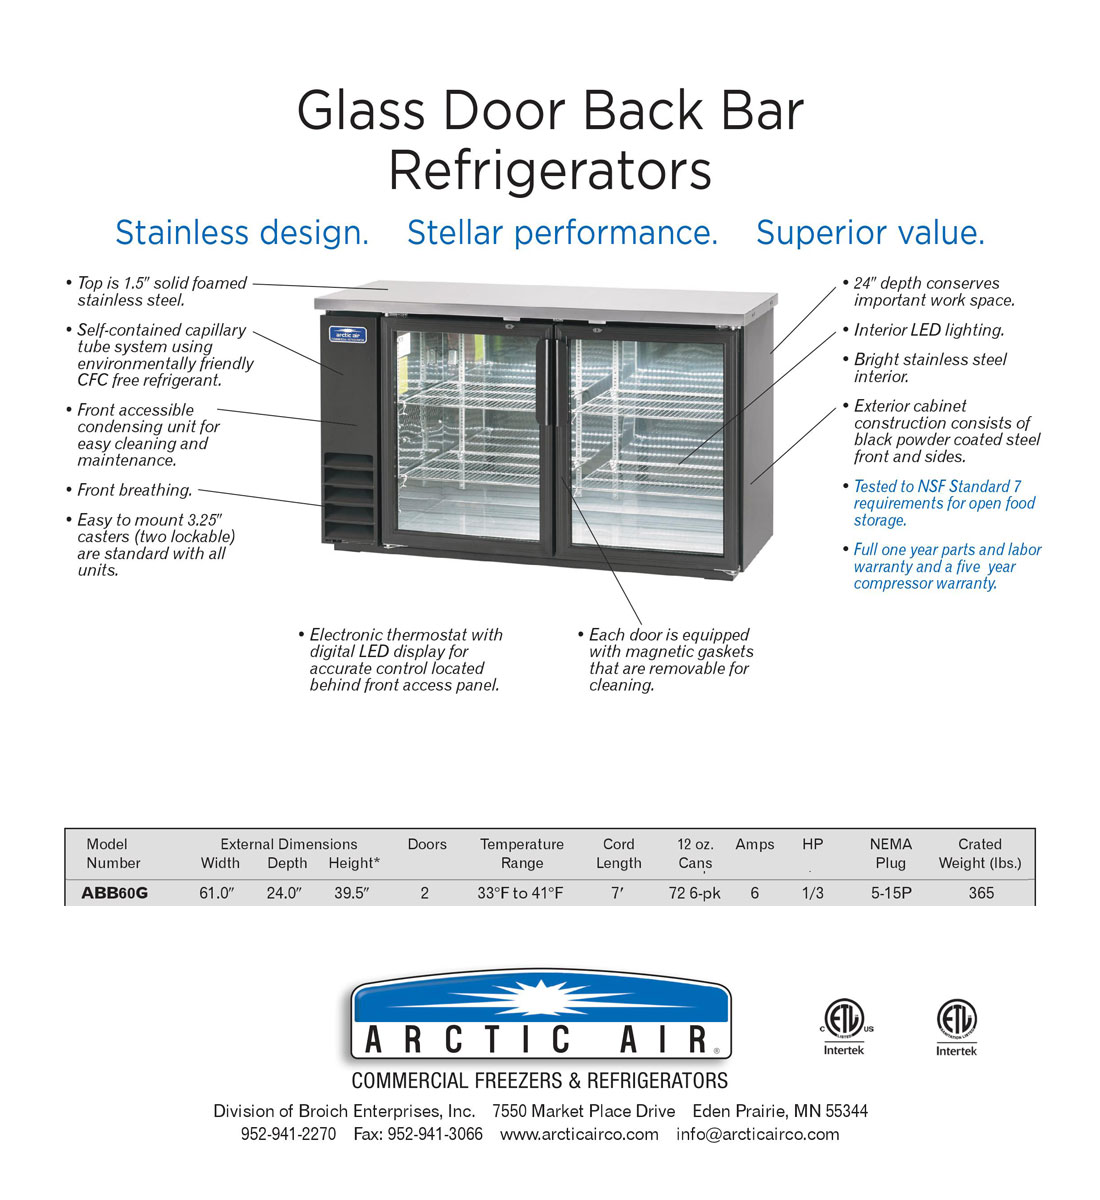 61 Inch Wide Back Bar Refrigerator with 2 Glass Doors and Stainless Steel Top (Arctic Air ABB60G) Specification Image